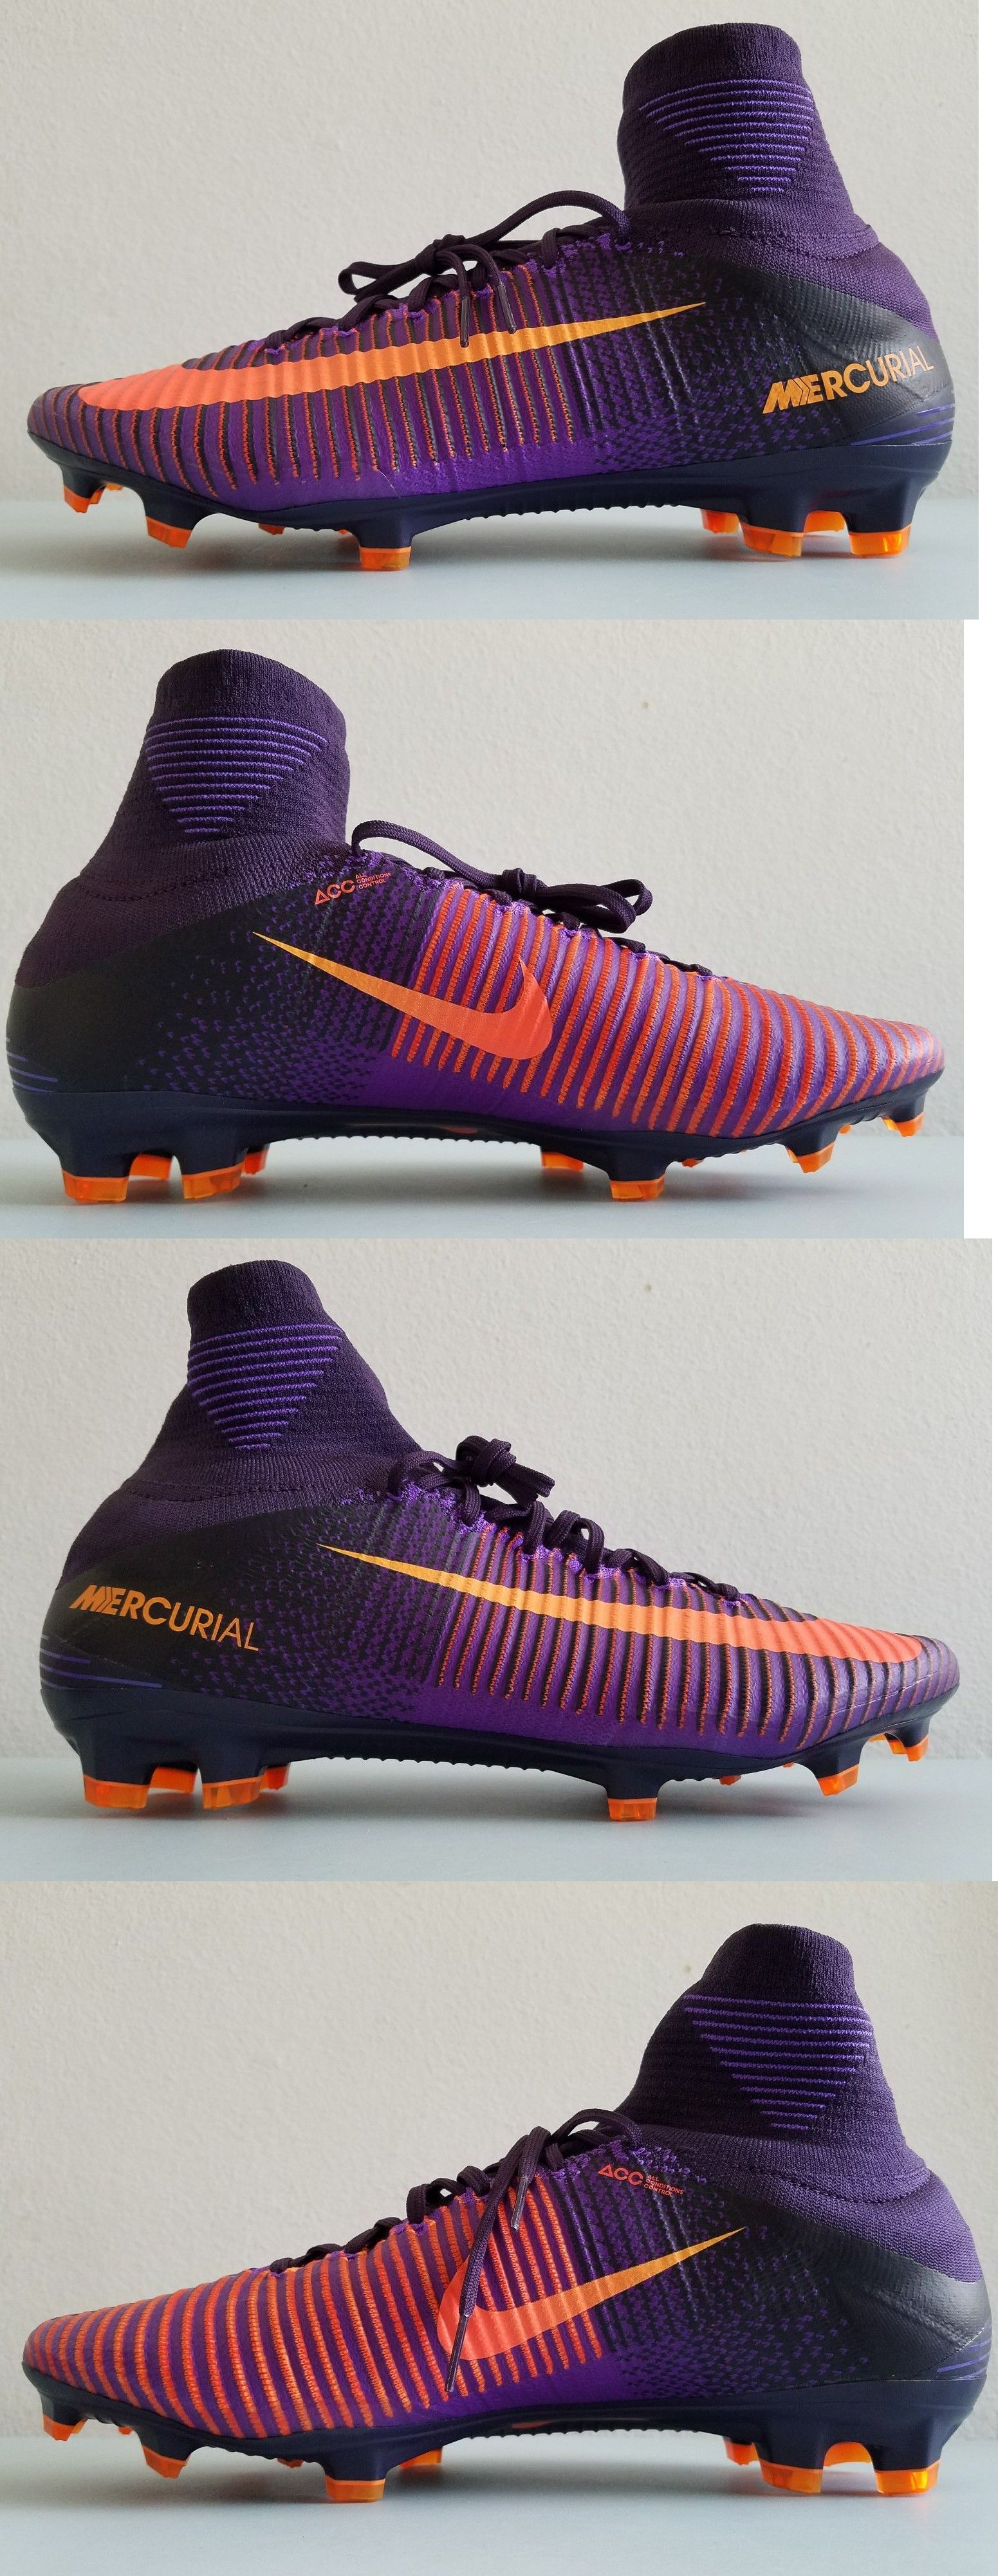 6fd3ab3bb08a Clothing Shoes and Accessories 159178  Nike Mercurial Superfly V Fg Mens  Soccer Purple Nike 831940